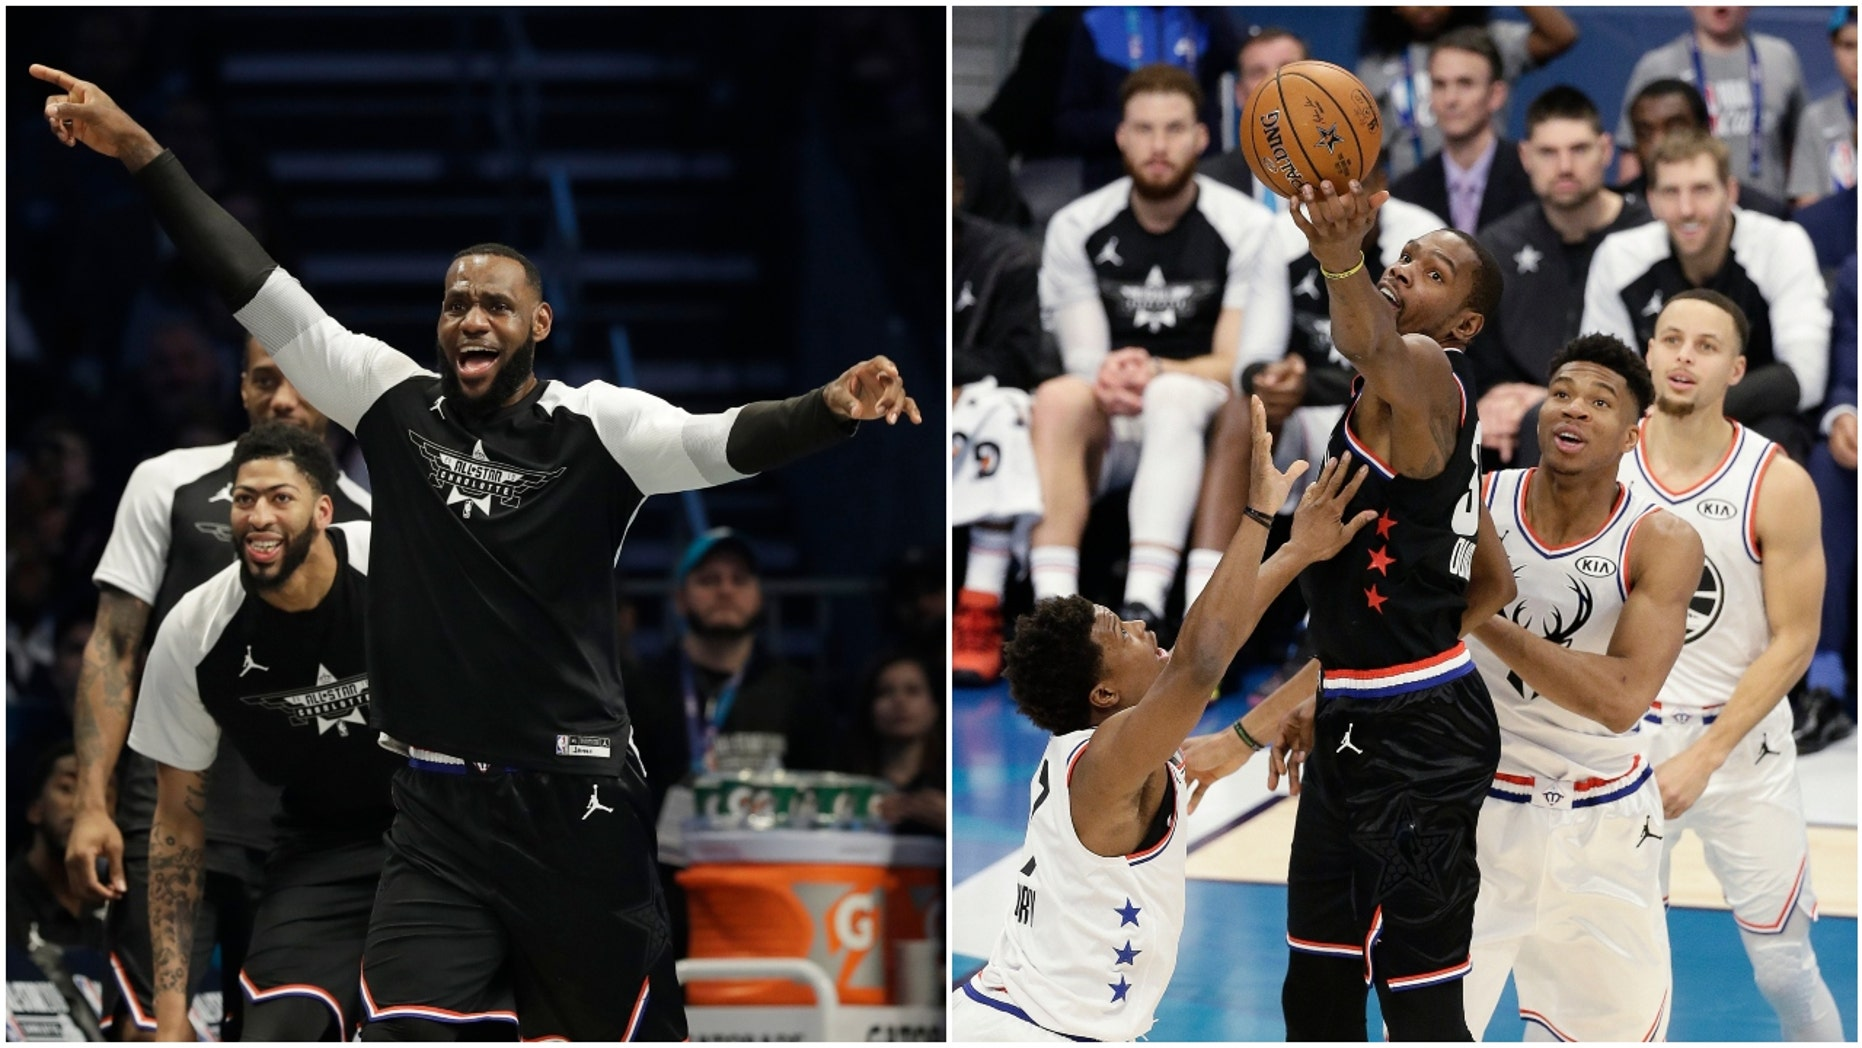 LeBron James and Kevin Durant at NBA All-Star Game (Photo: AP Photo/Chuck Burton and AP Photo/Gerry Broome)